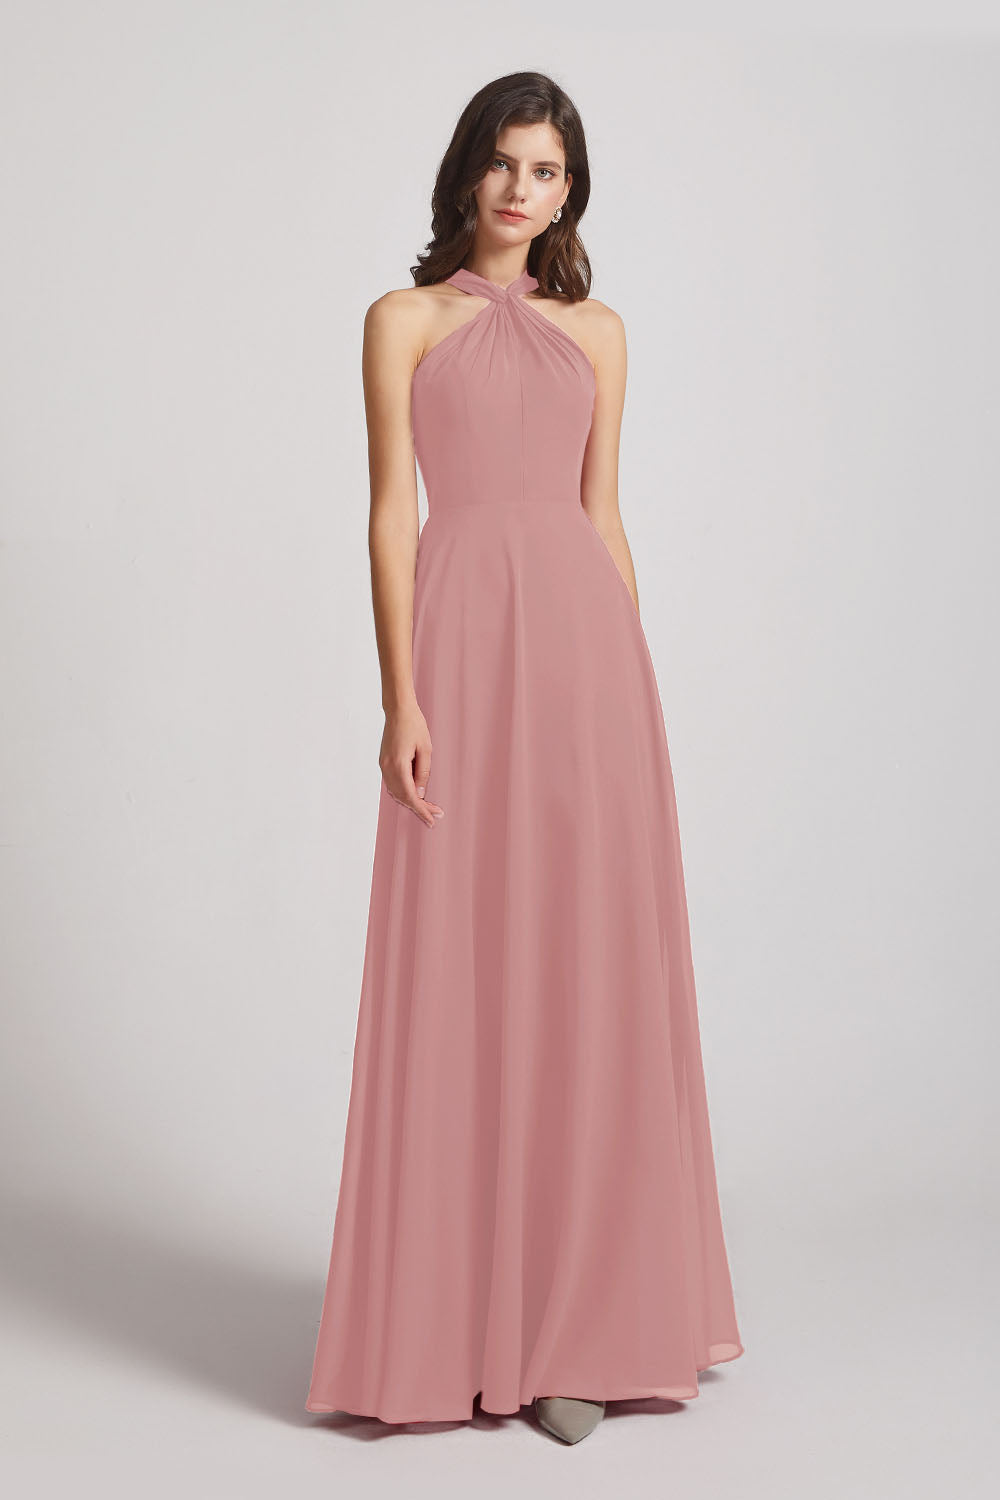 Alfa Bridal Dusty Pink Floor Length Chiffon Bridesmaid Dresses with Criss Cross Neckline (AF0113)